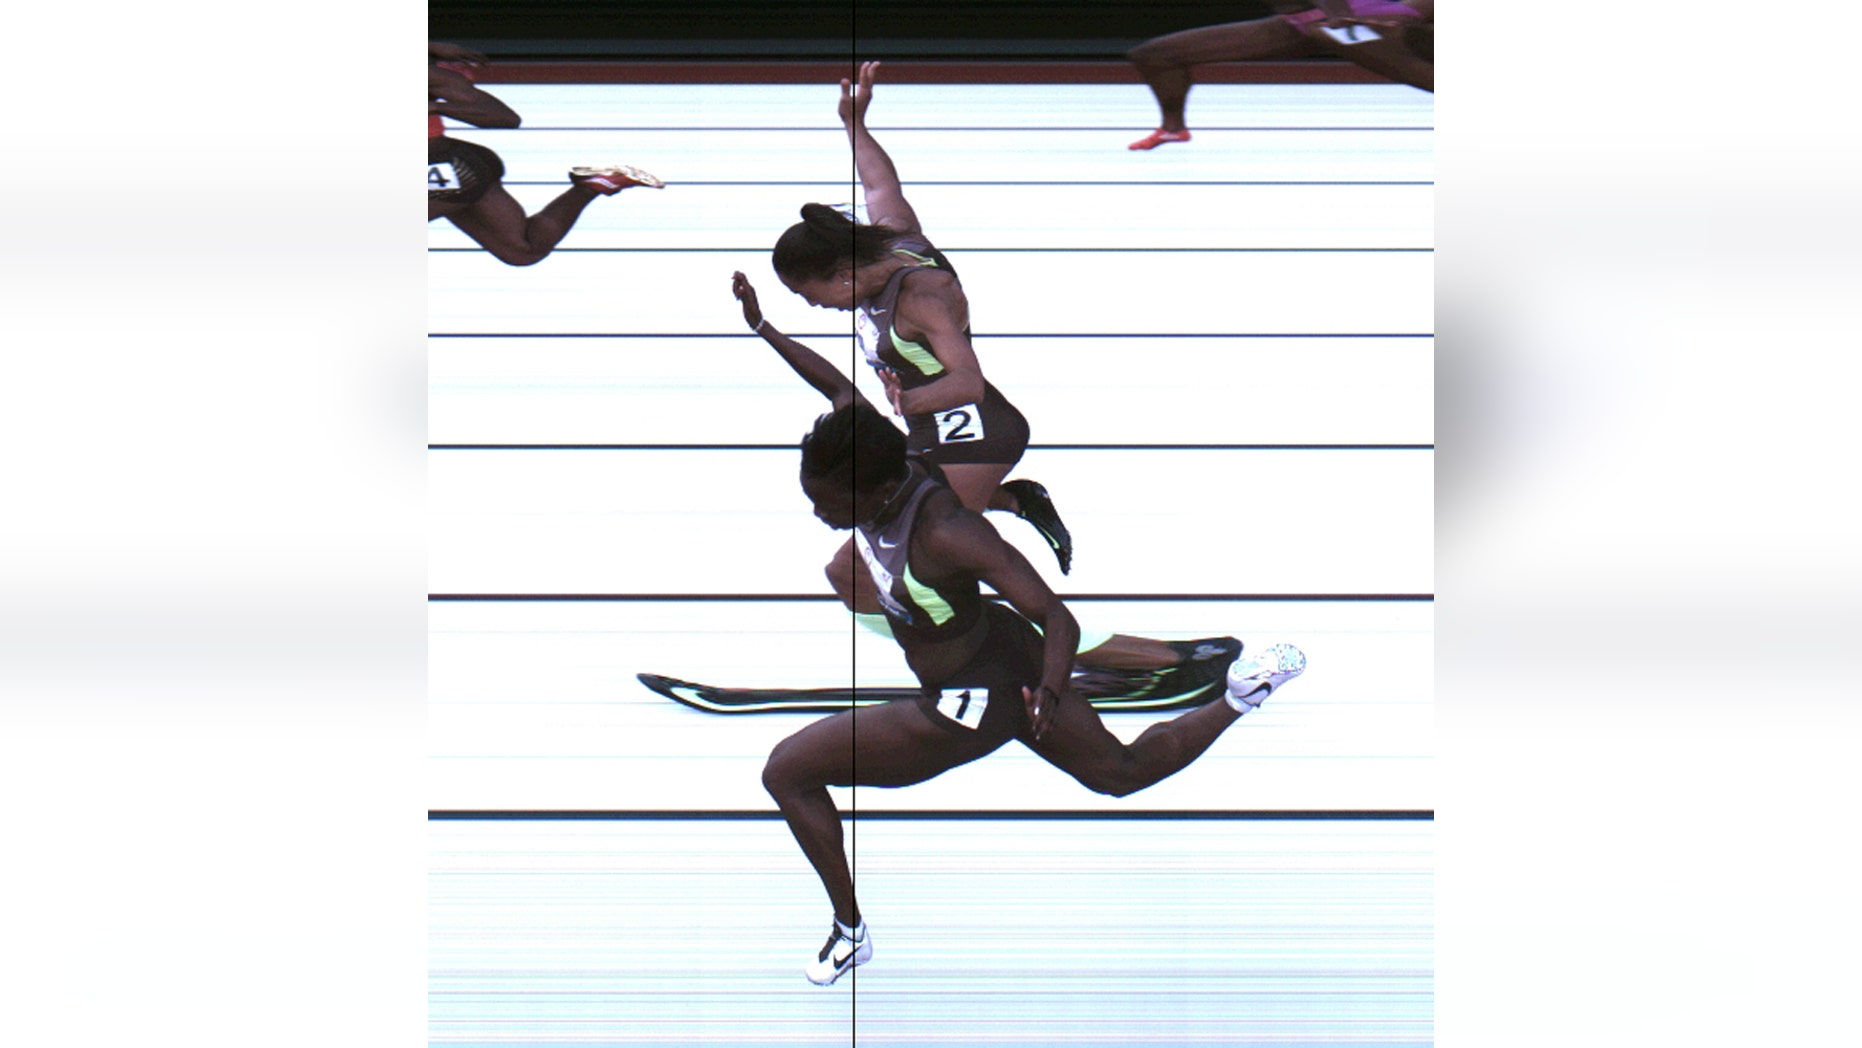 This Saturday, June 23, 2012, photo provided by USA Track & Field shows the third-place finish of the women's 100-meter final from a photo-finish camera, shot at 3,000-frames-per-second, during the U.S. Olympic Track and Field Trials in Eugene, Ore.